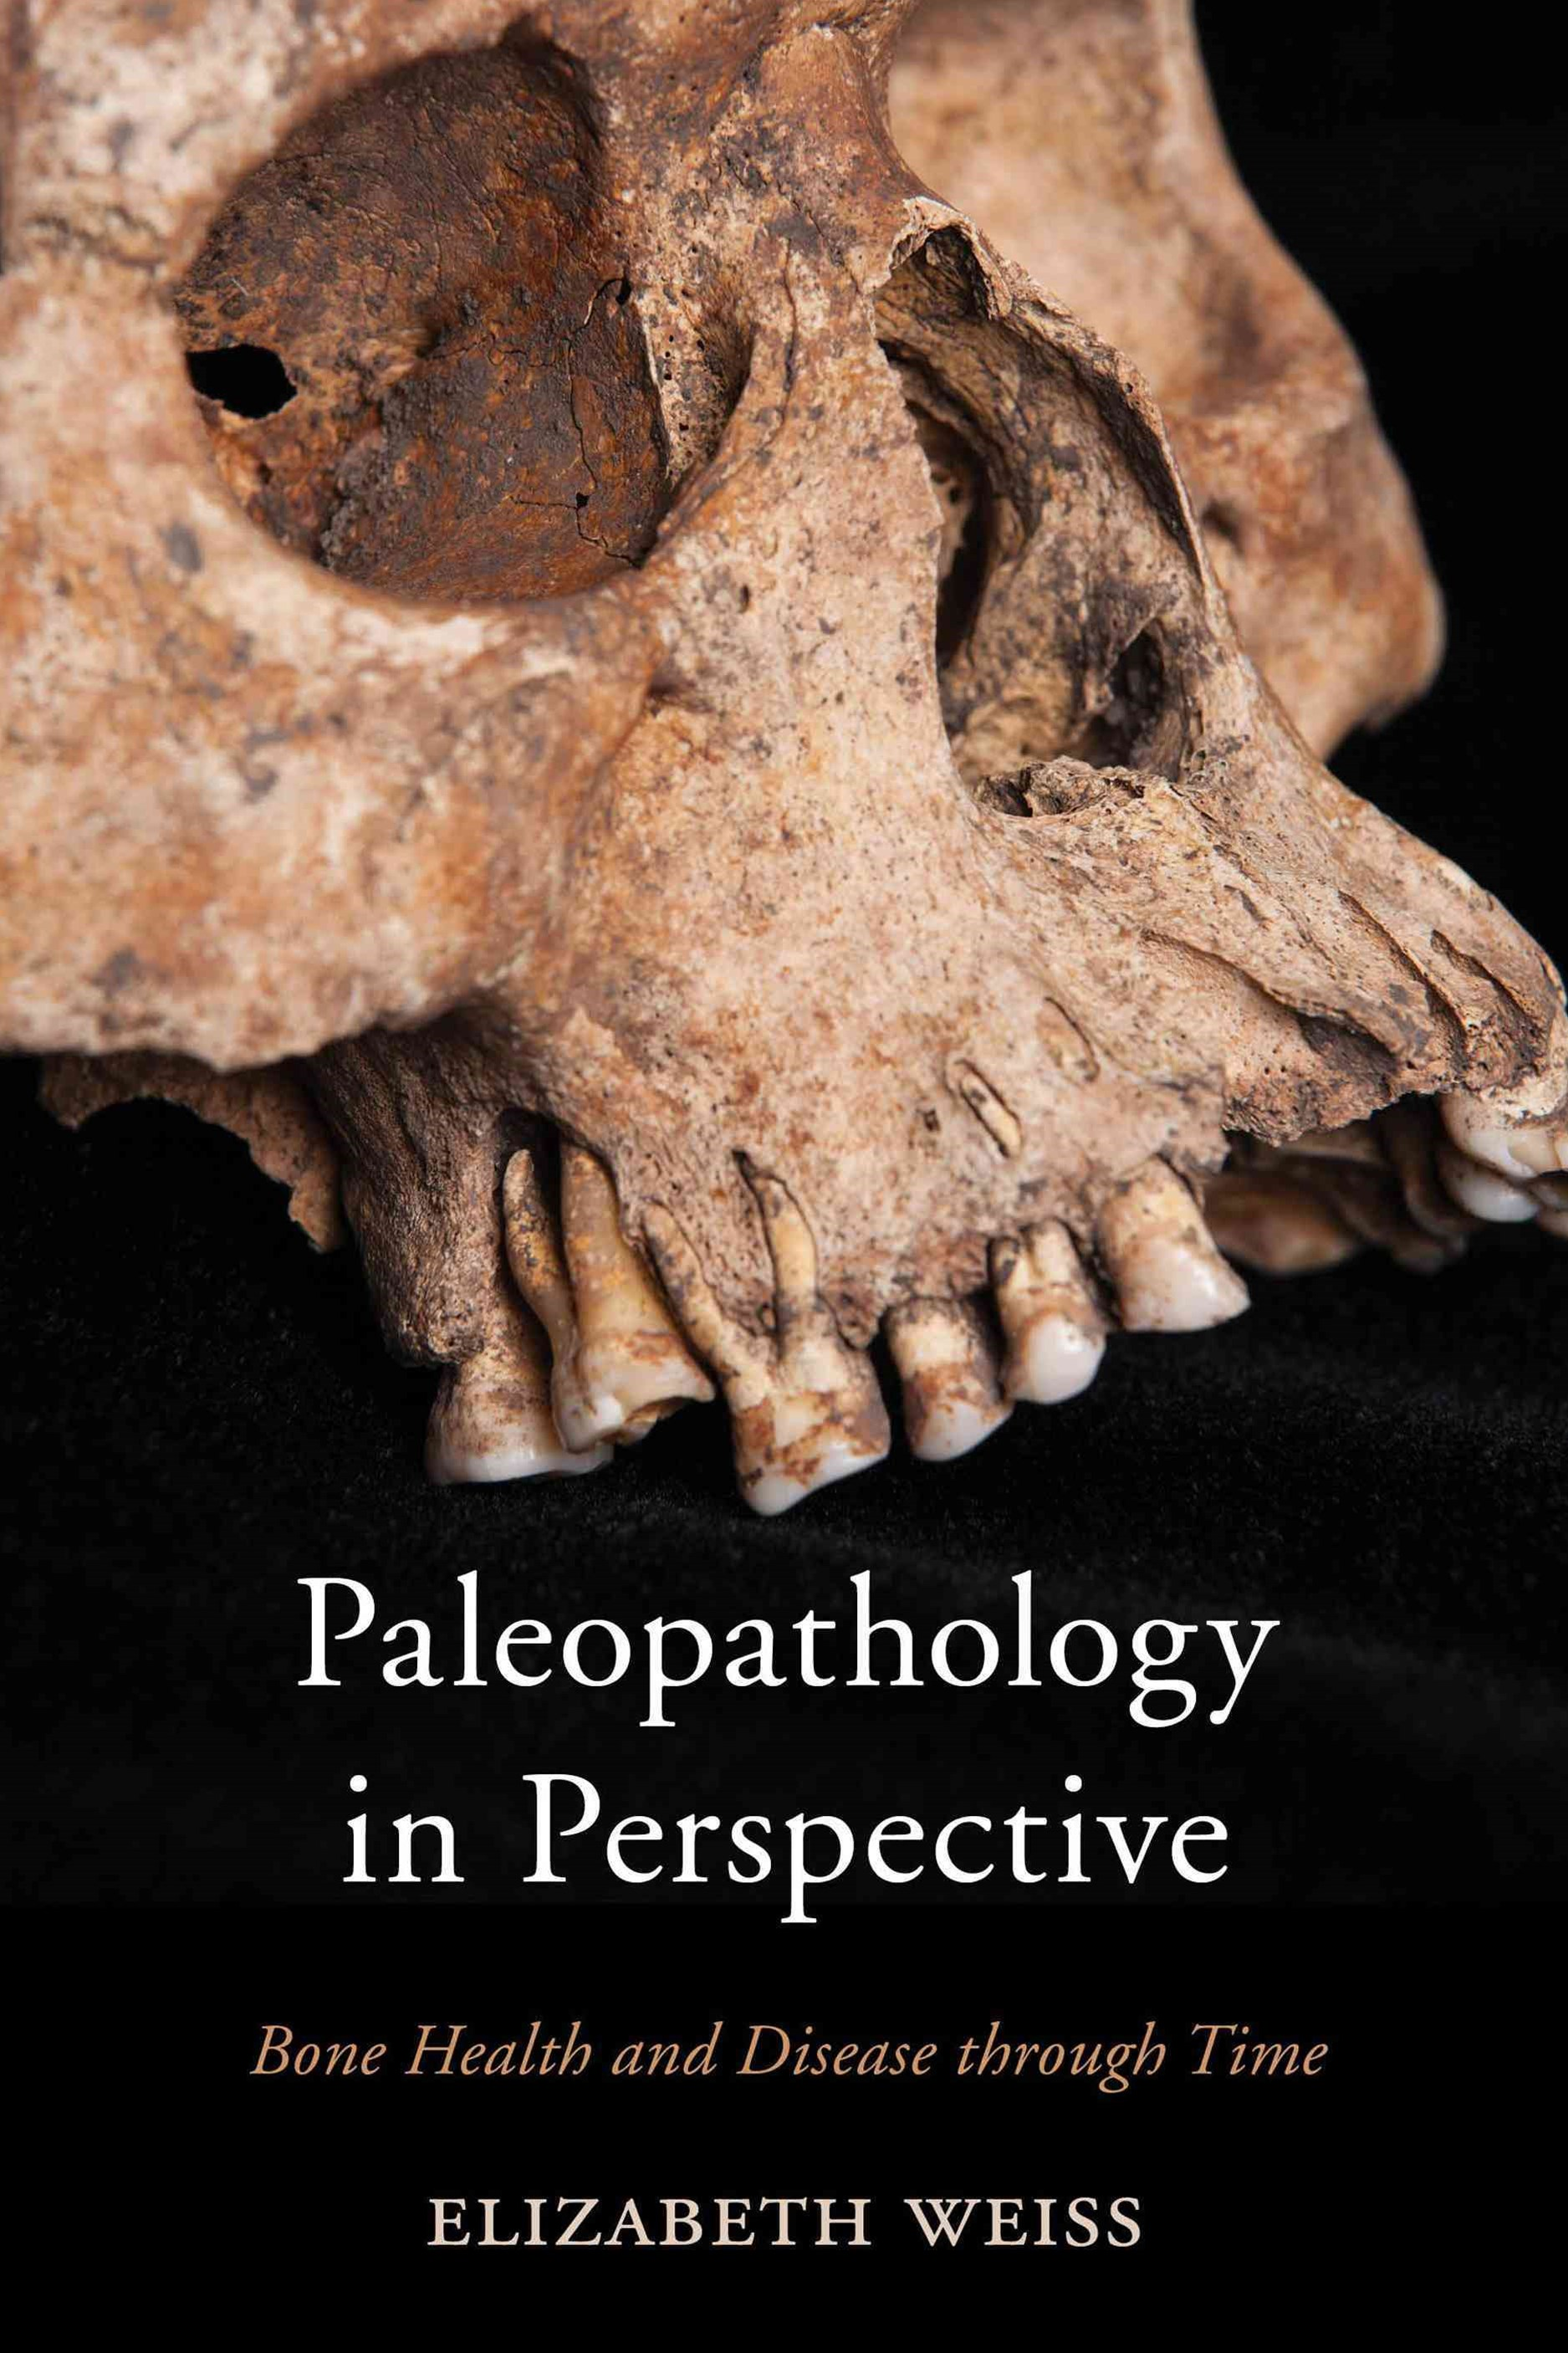 Paleopathology in Perspective